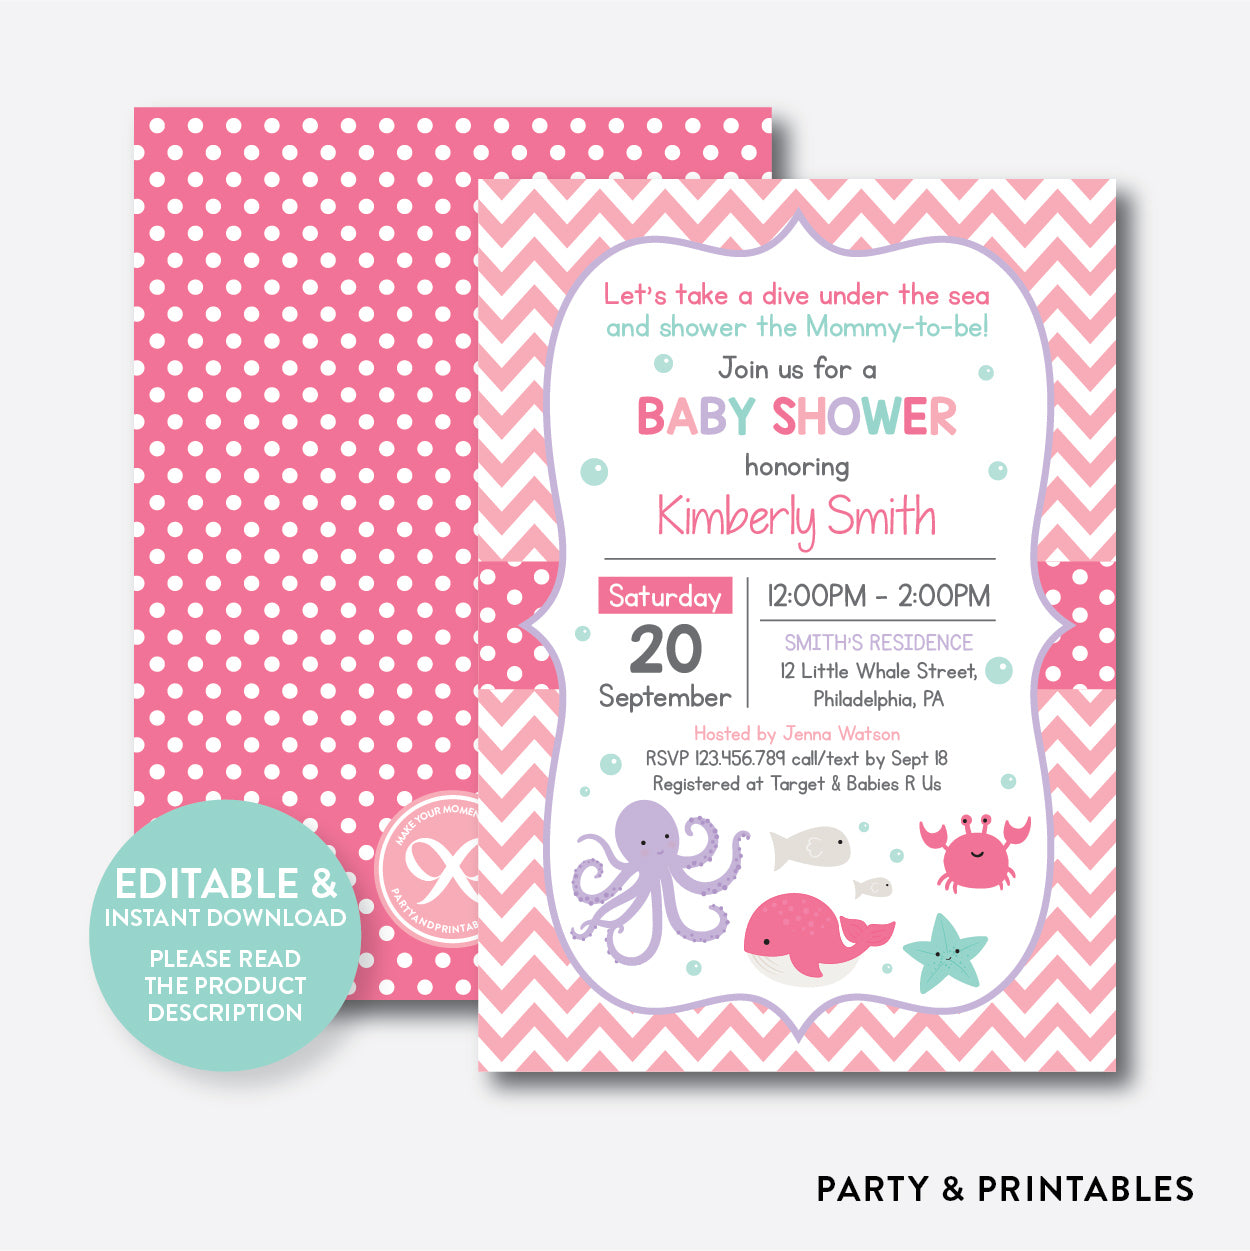 Under The Sea Baby Shower Invitation Editable Instant Download SBS66 700 USD 1000 How To Order Matching Printables Printing Service